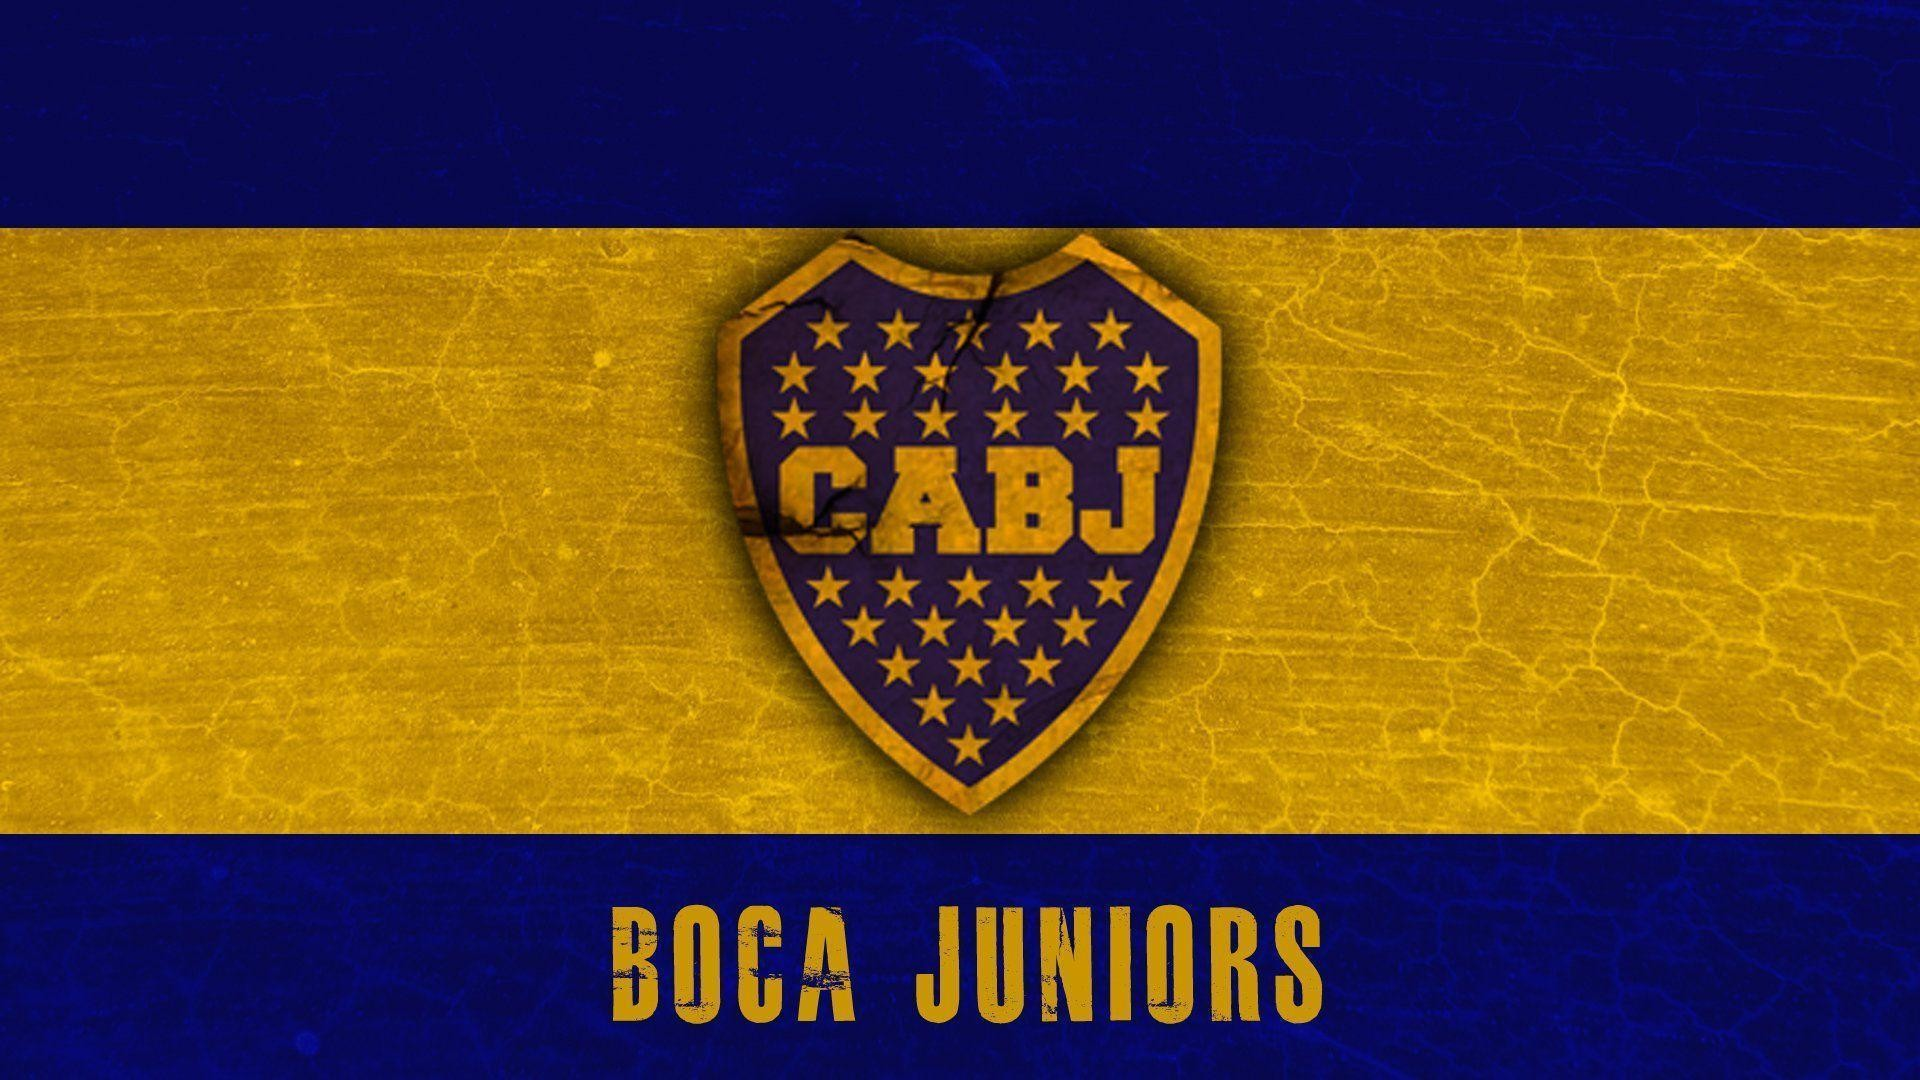 Boca Juniors HD Wallpapers 78 images 1920x1080